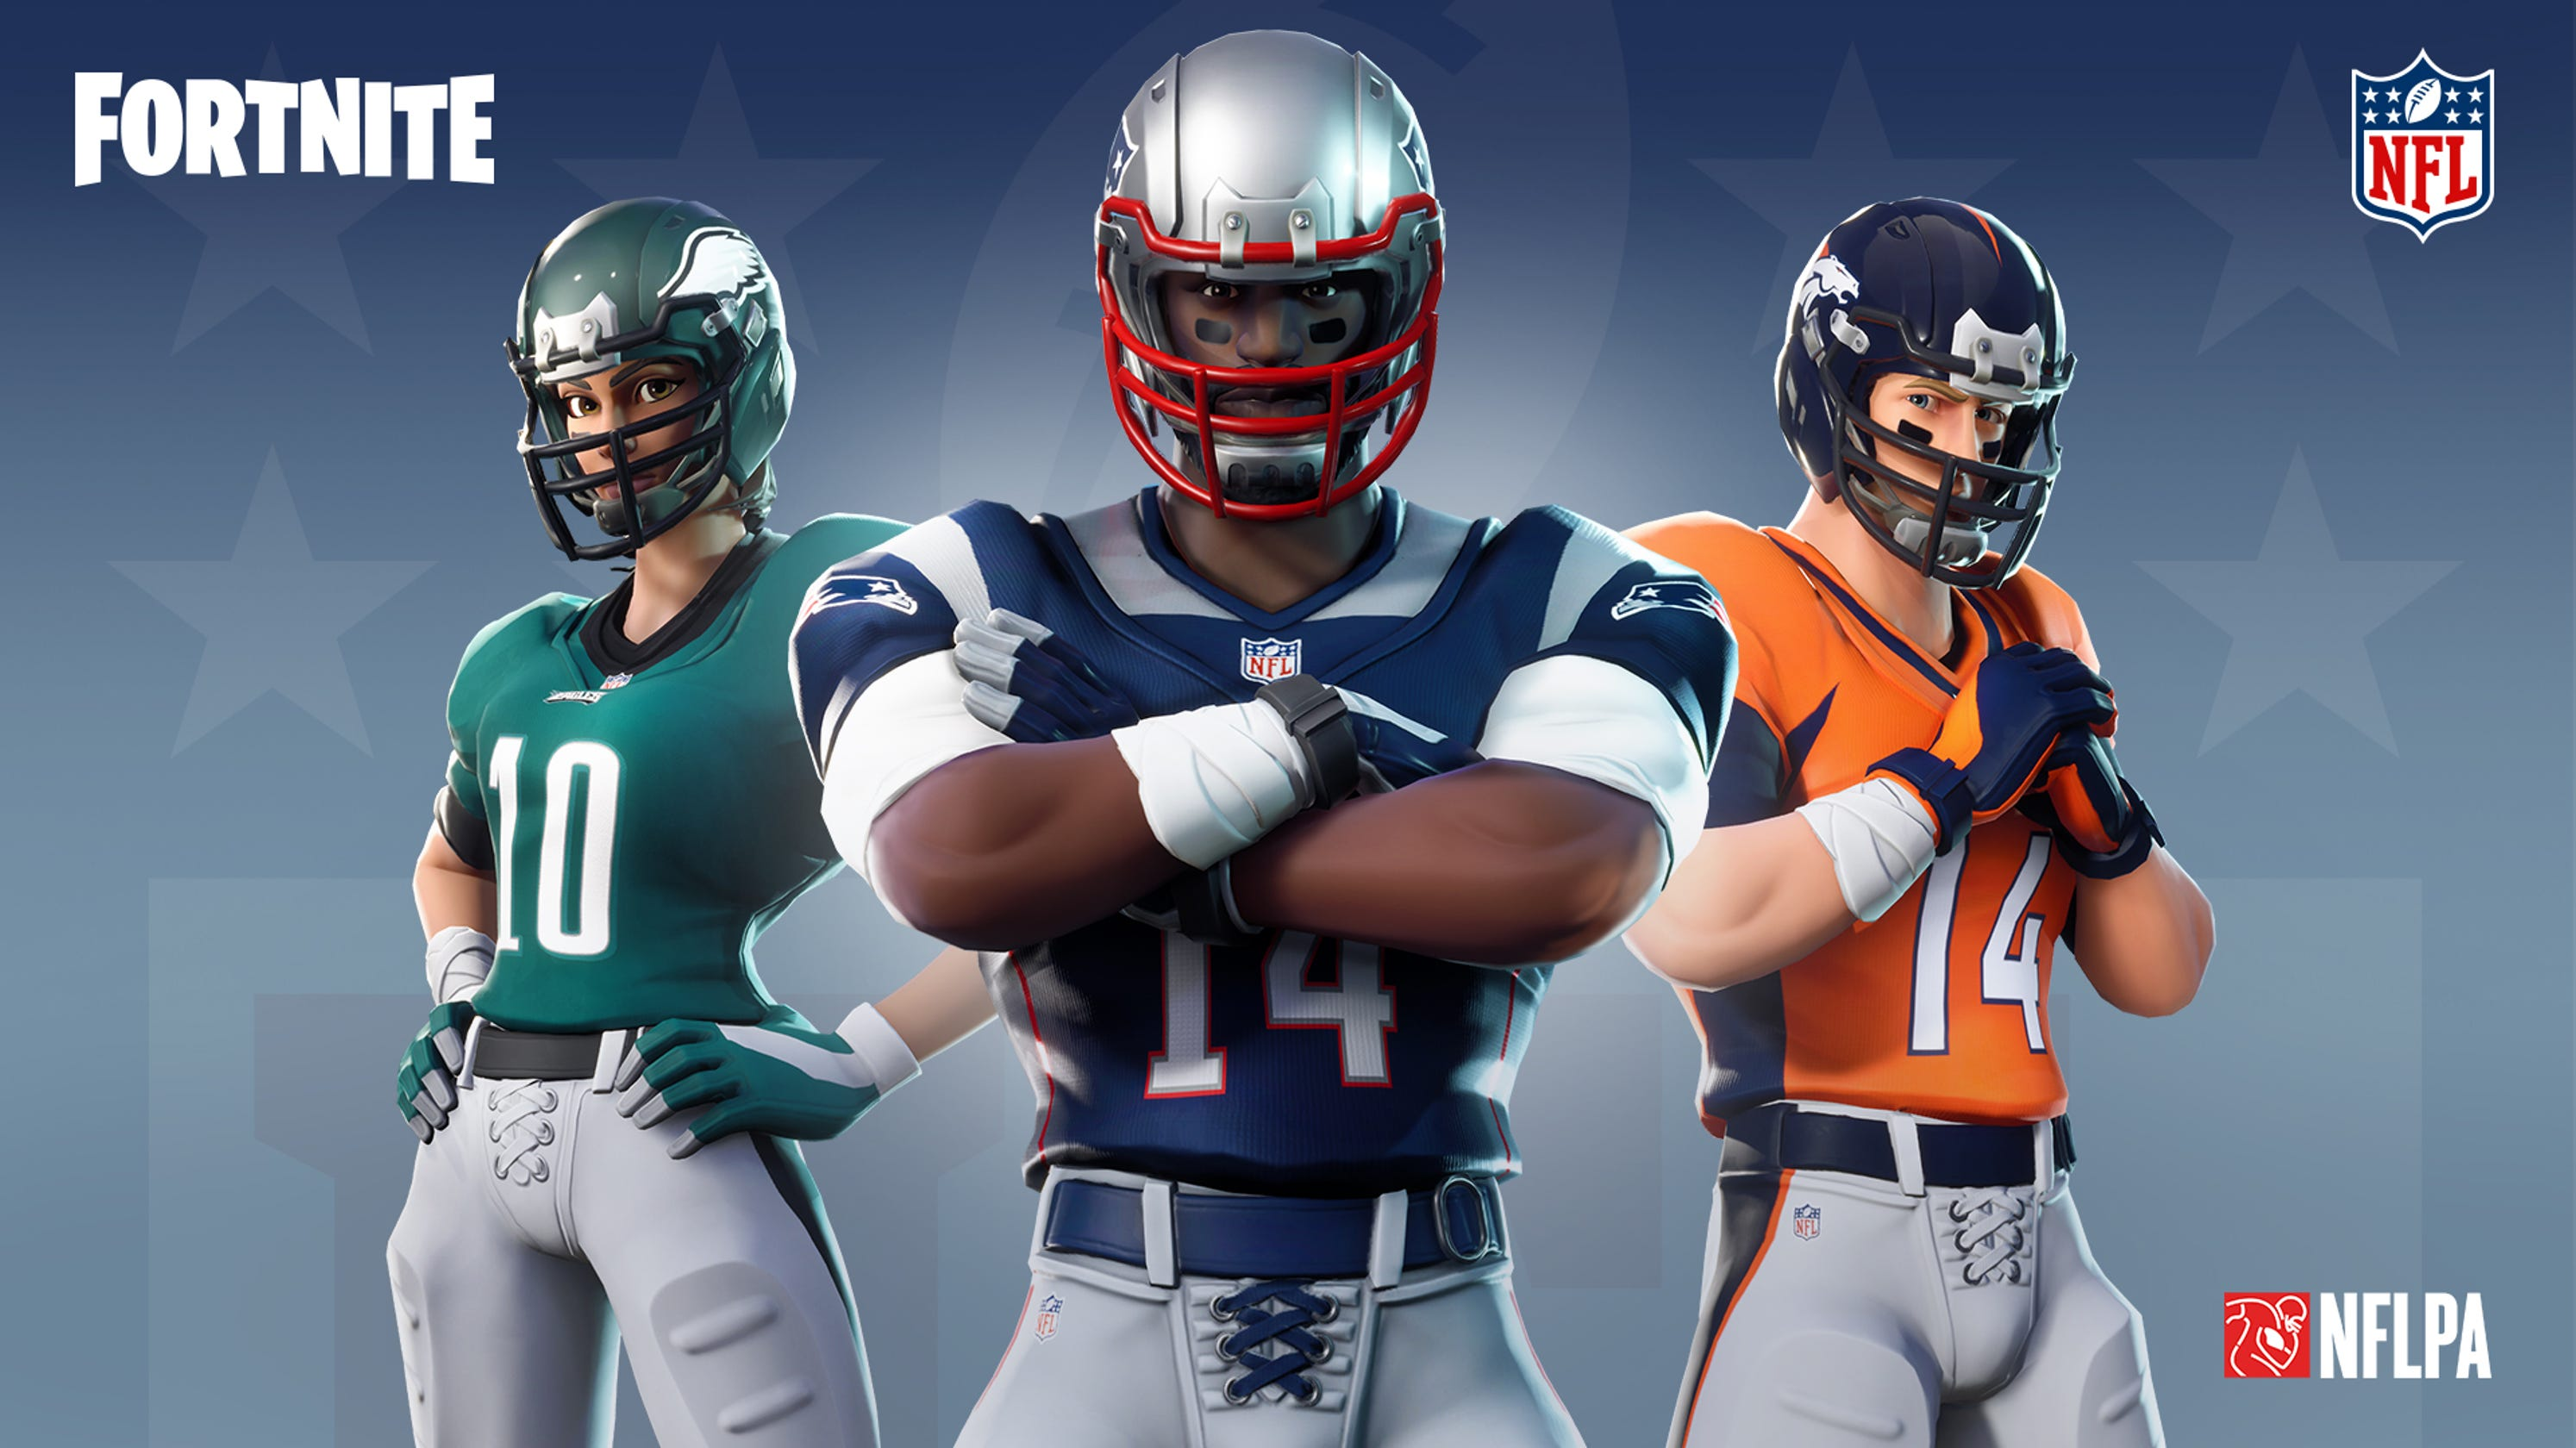 Fortnite  adds NFL uniforms and other football gear c172bc7a8